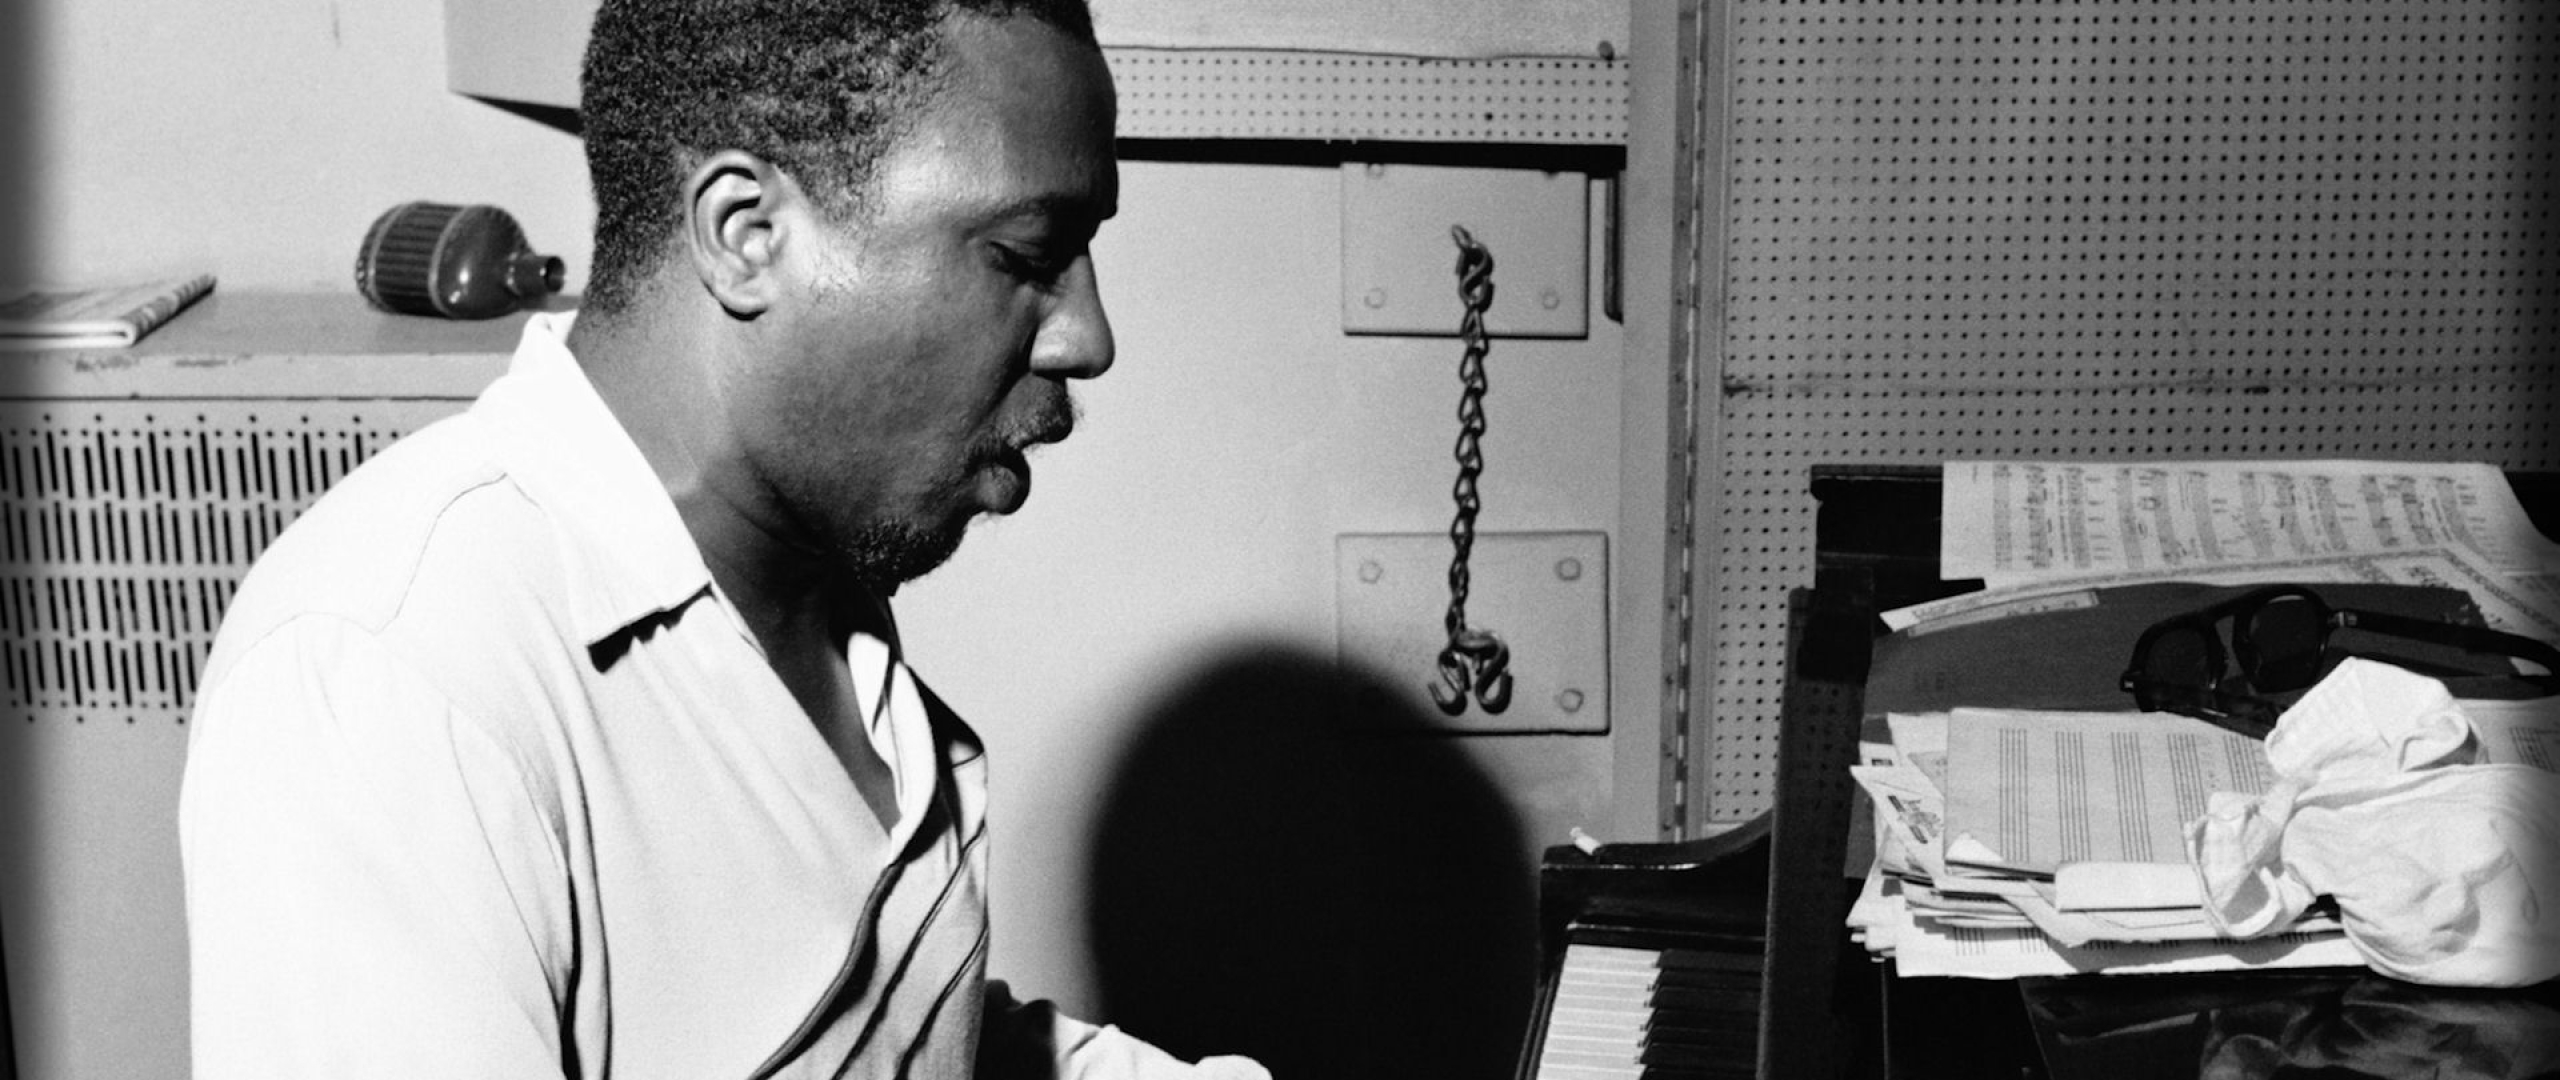 2560x1080 Thelonious Monk Piano Play 2560x1080 Resolution Wallpaper Hd Music 4k Wallpapers Images Photos And Background